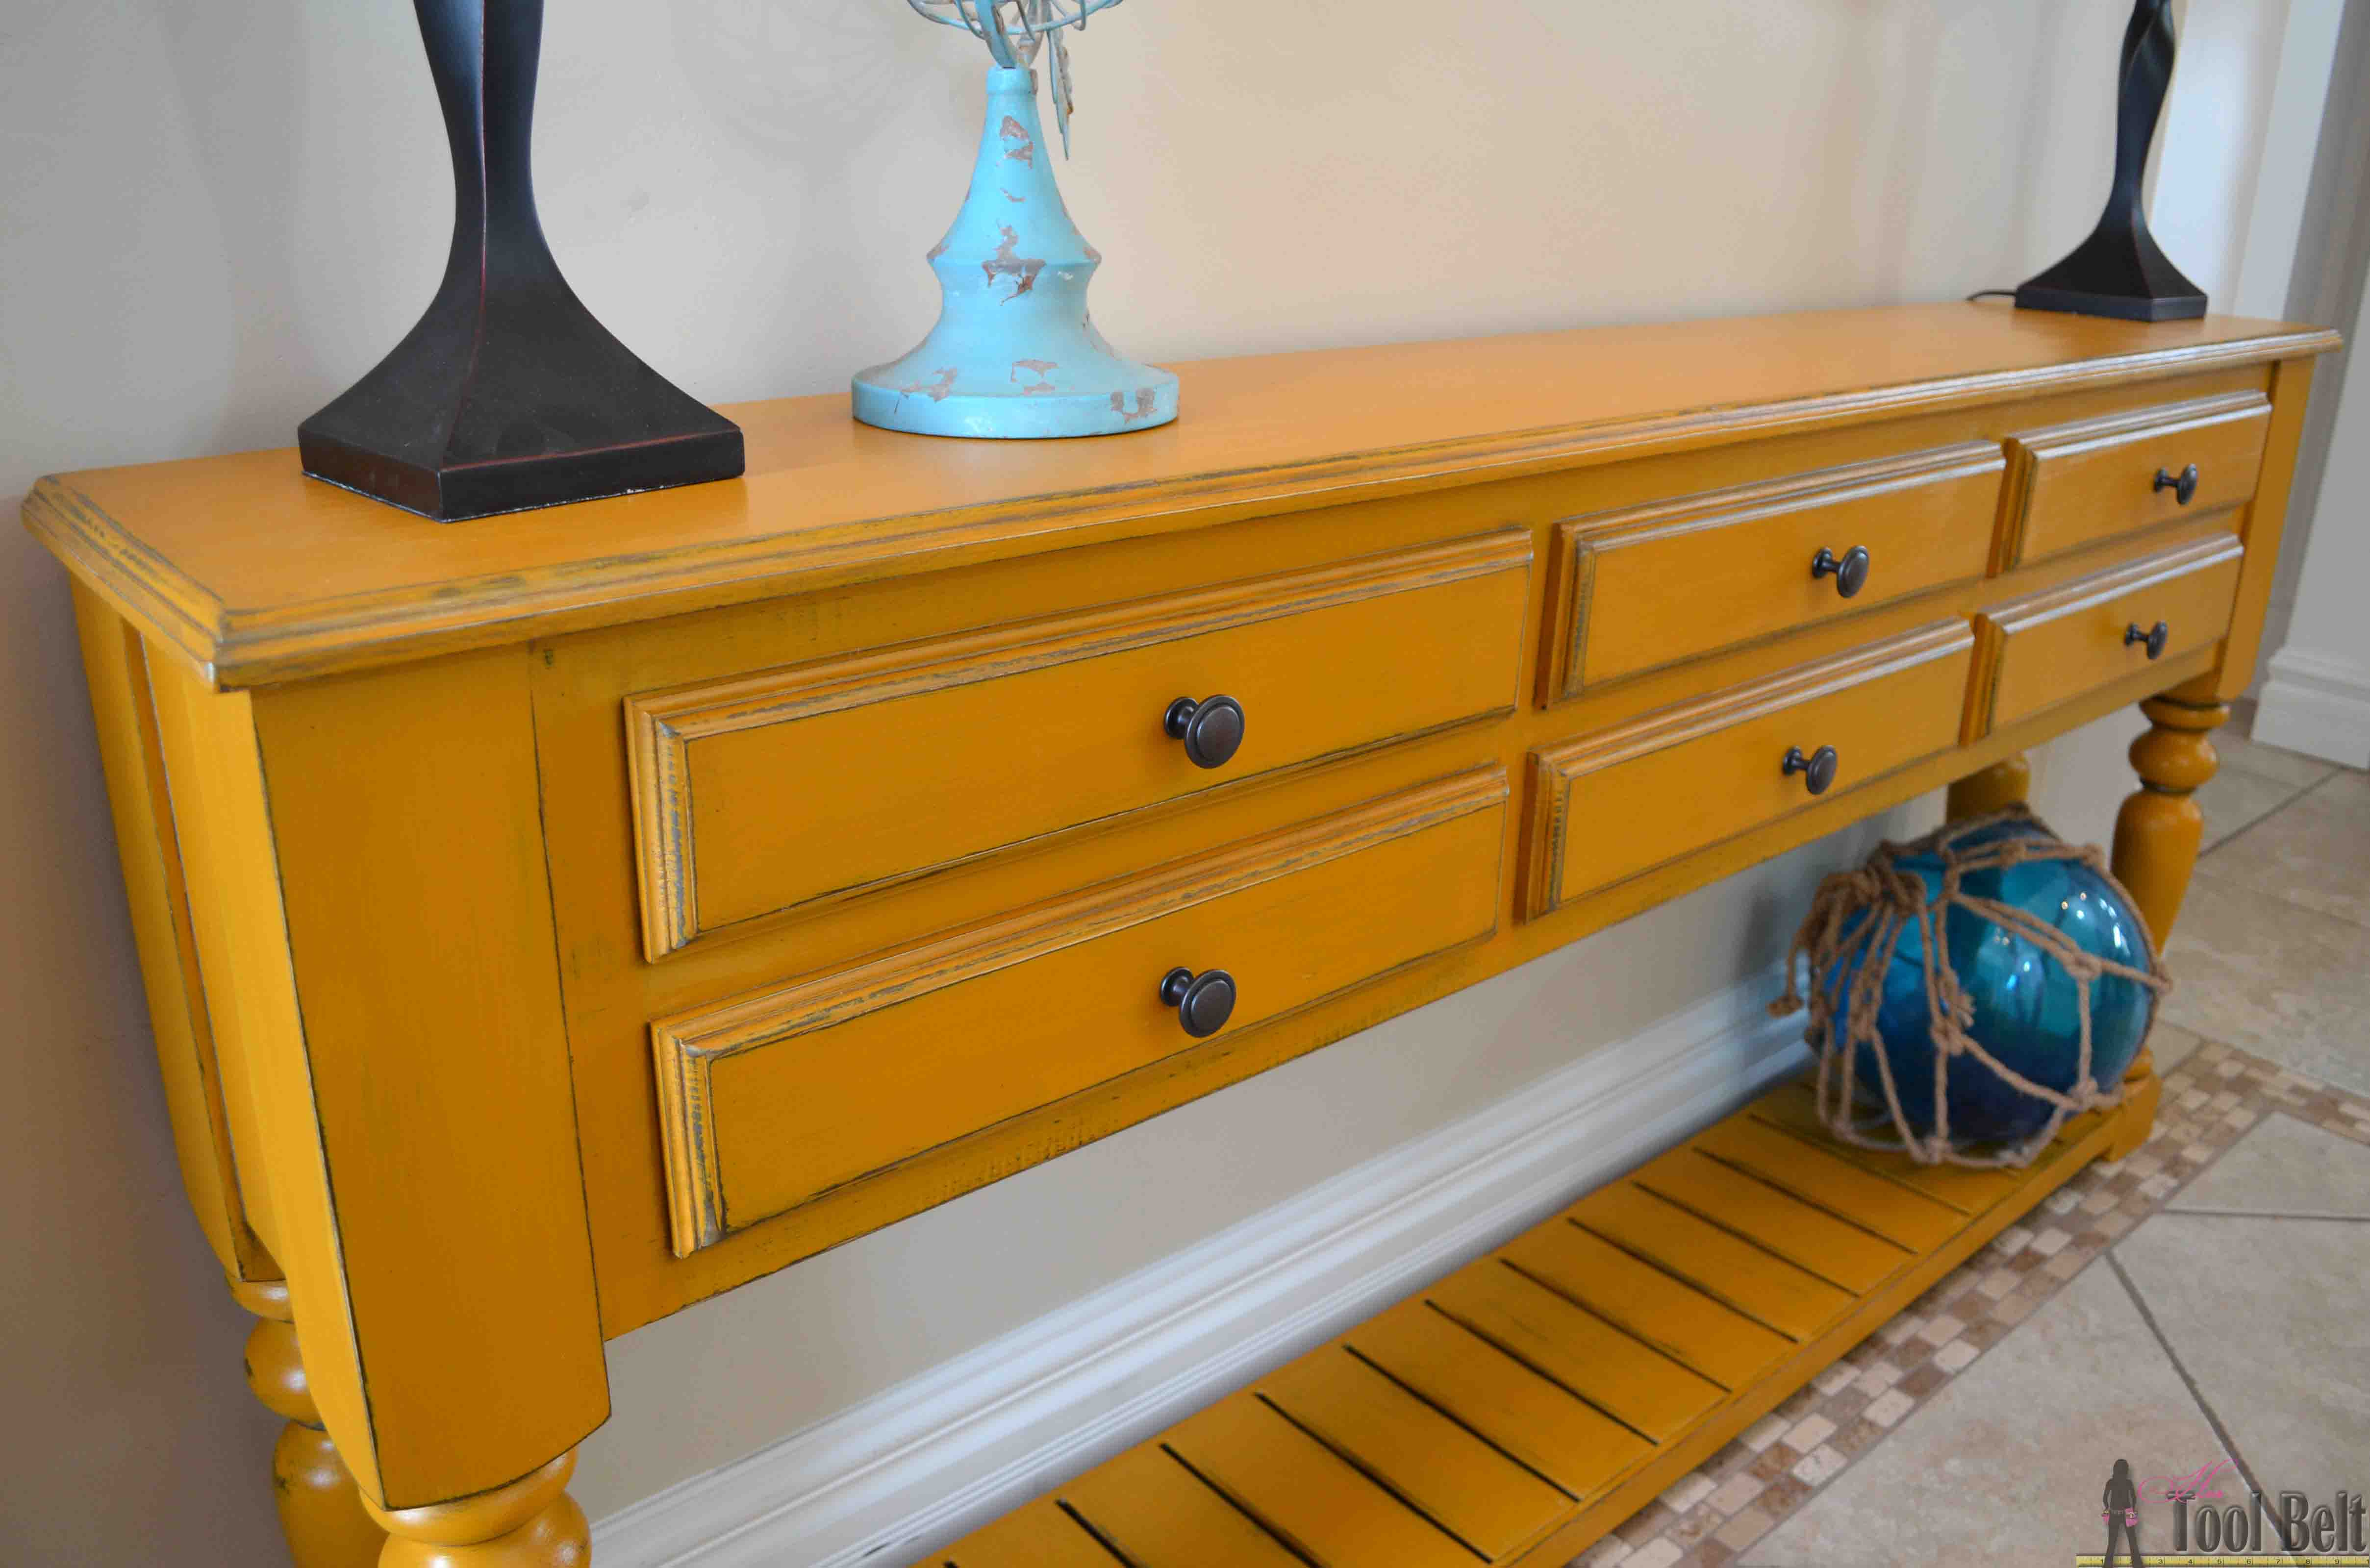 Grand island console table her tool belt need a stylish console table perfect for your space free plans that you can geotapseo Images